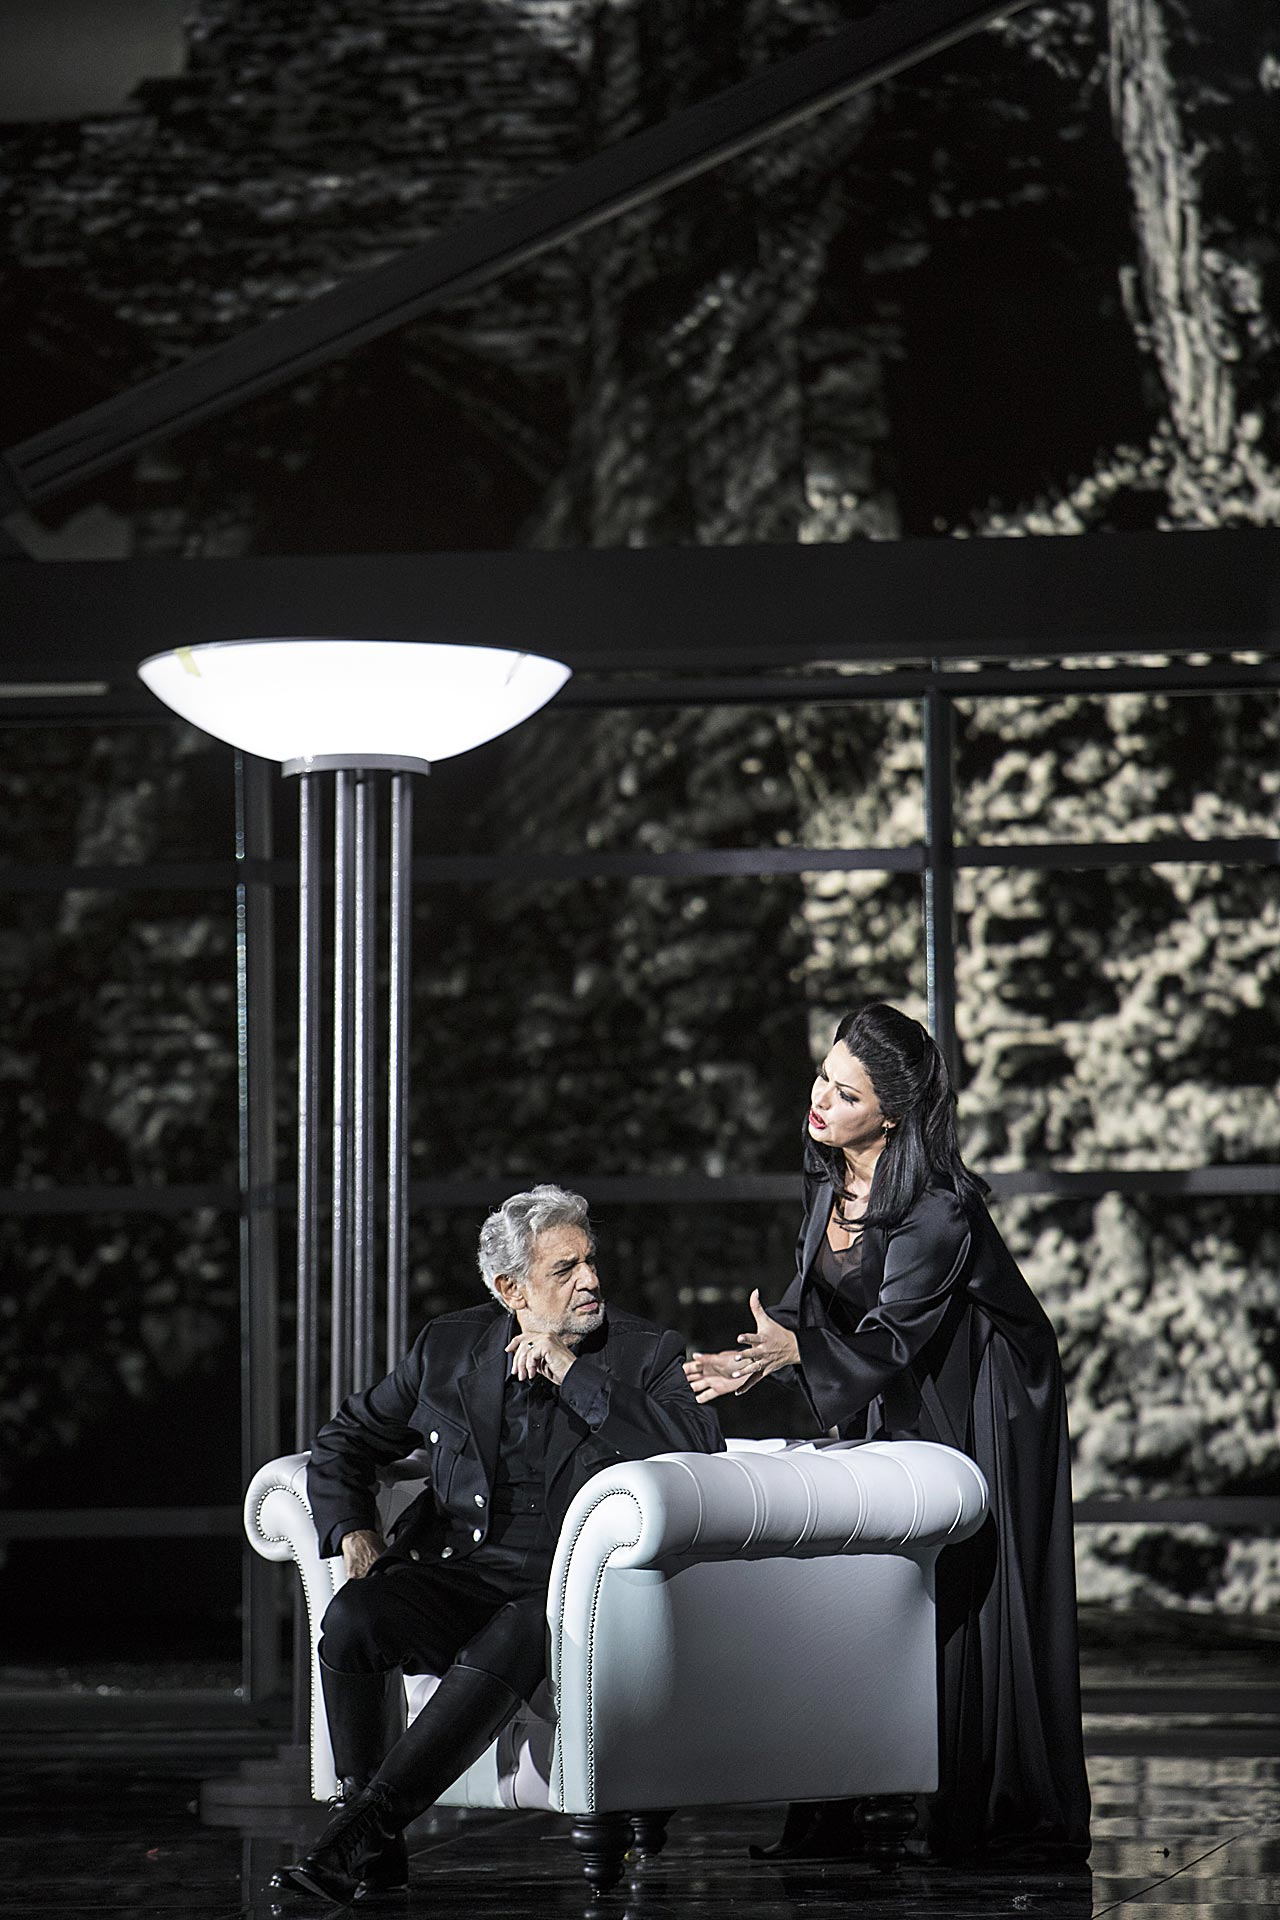 Plácido Domingo (Macbeth), Anna Netrebko (Lady Macbeth) | Foto © Bernd Uhlig | Macbeth 30